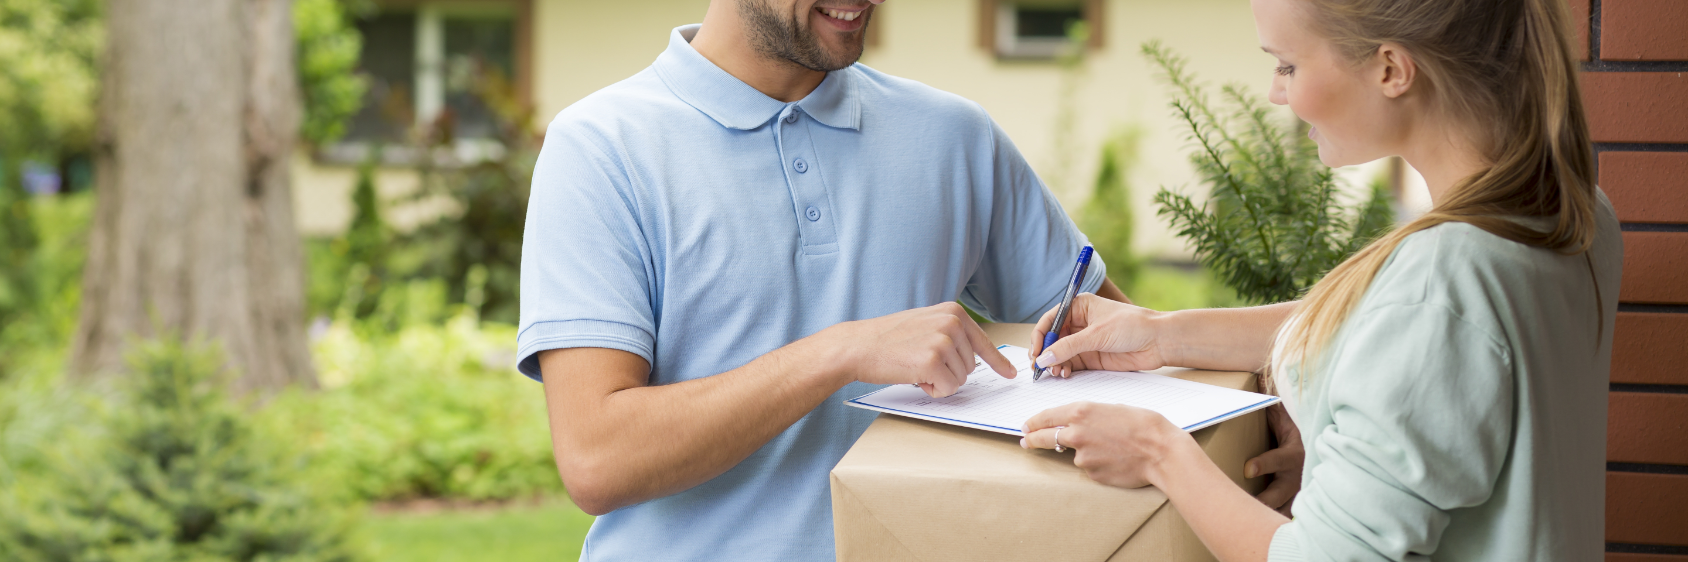 A man delivers a parcel to a woman